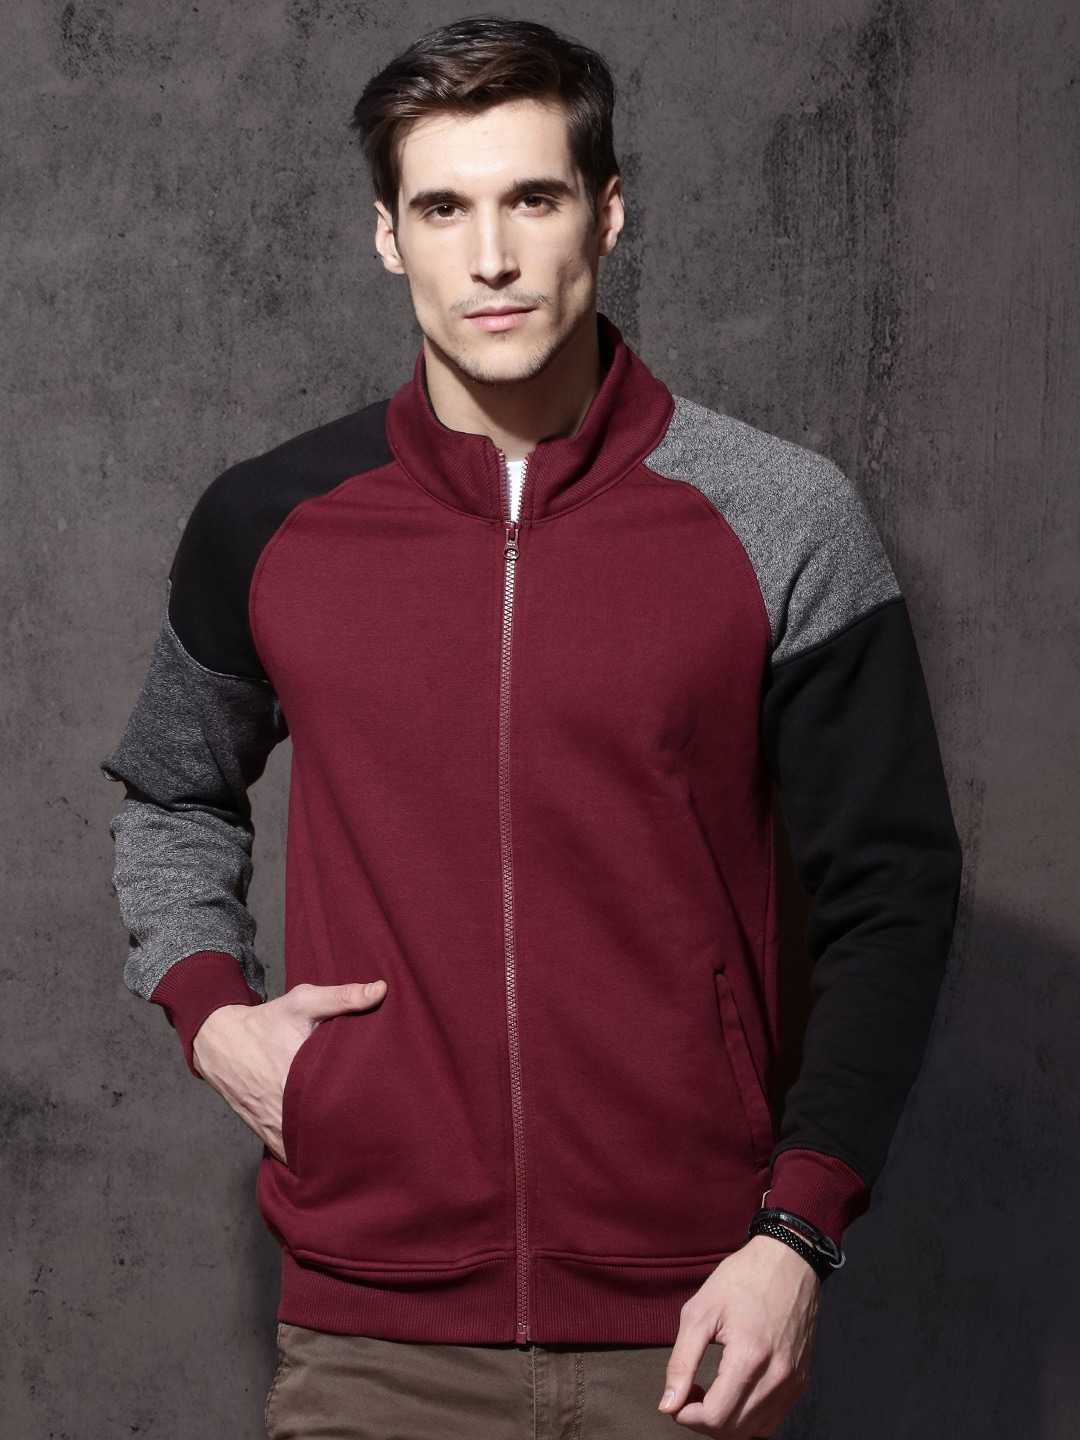 Roadster Men Burgundy Solid Sweatshirt image